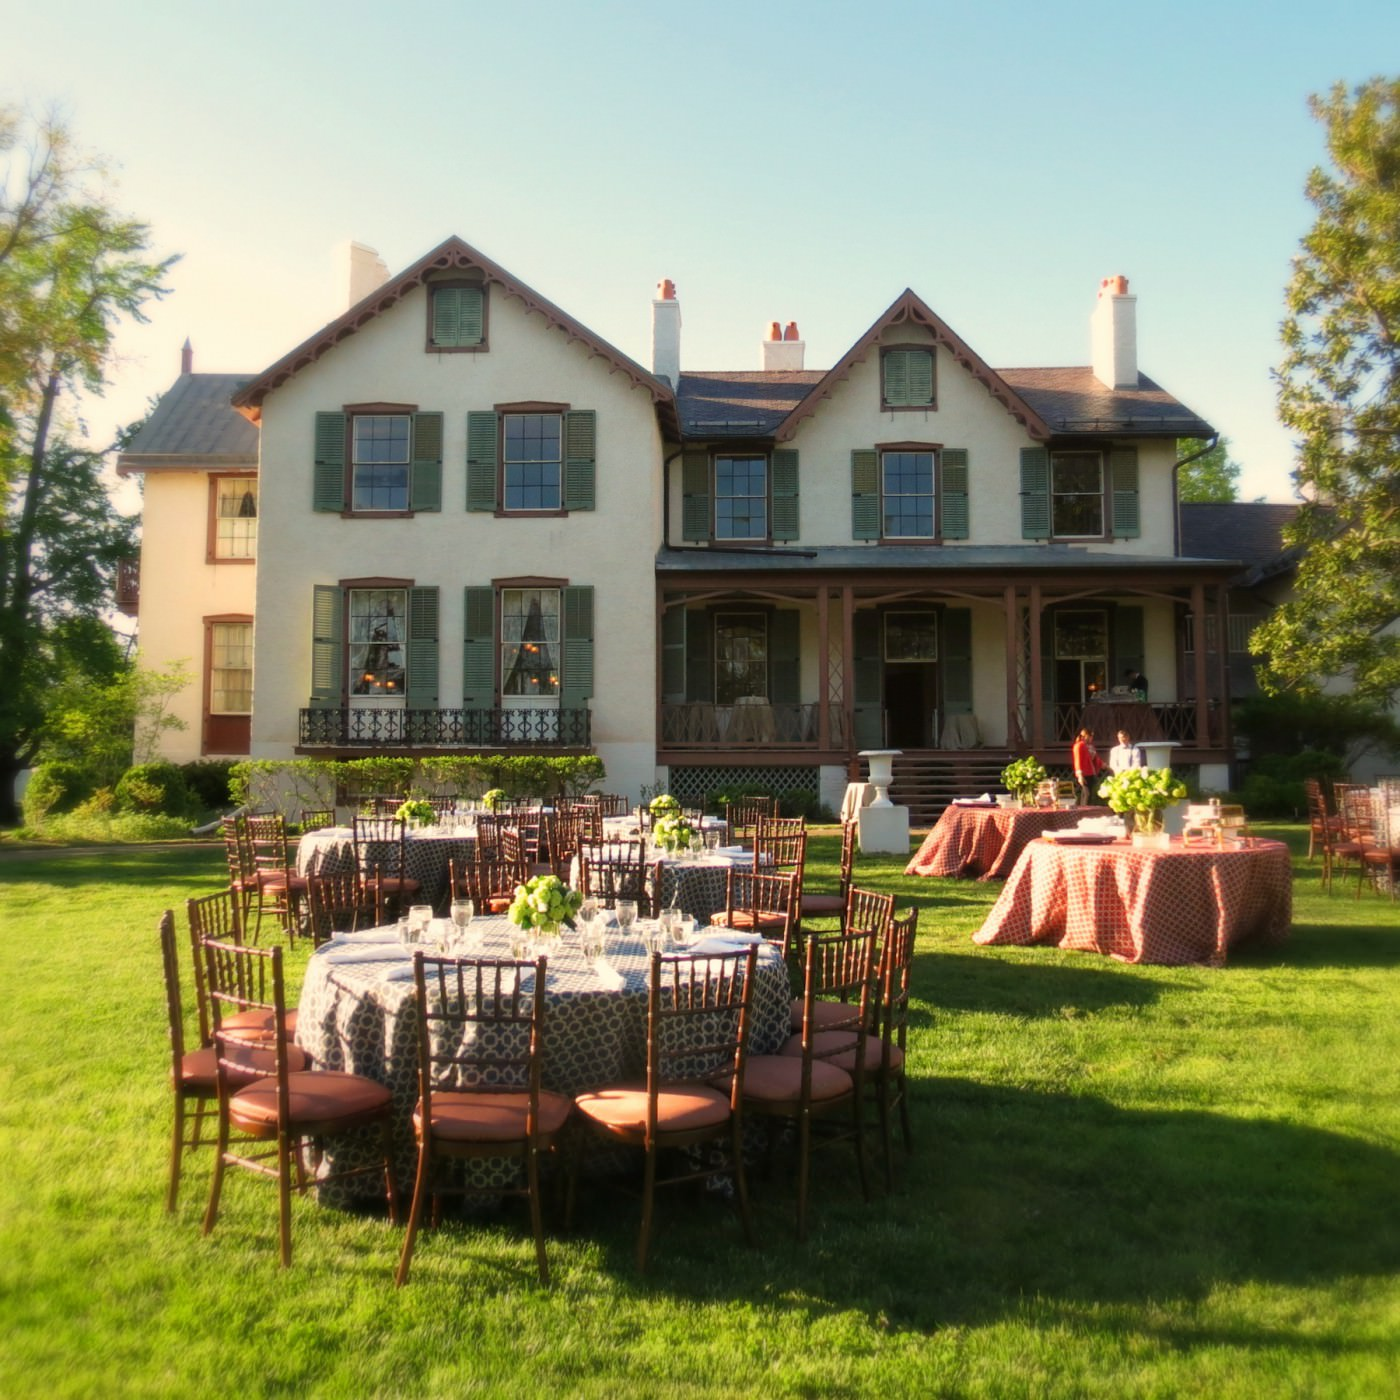 President Lincoln's Cottage - Event Venues in Washington, D.C. with Catering by Seasons